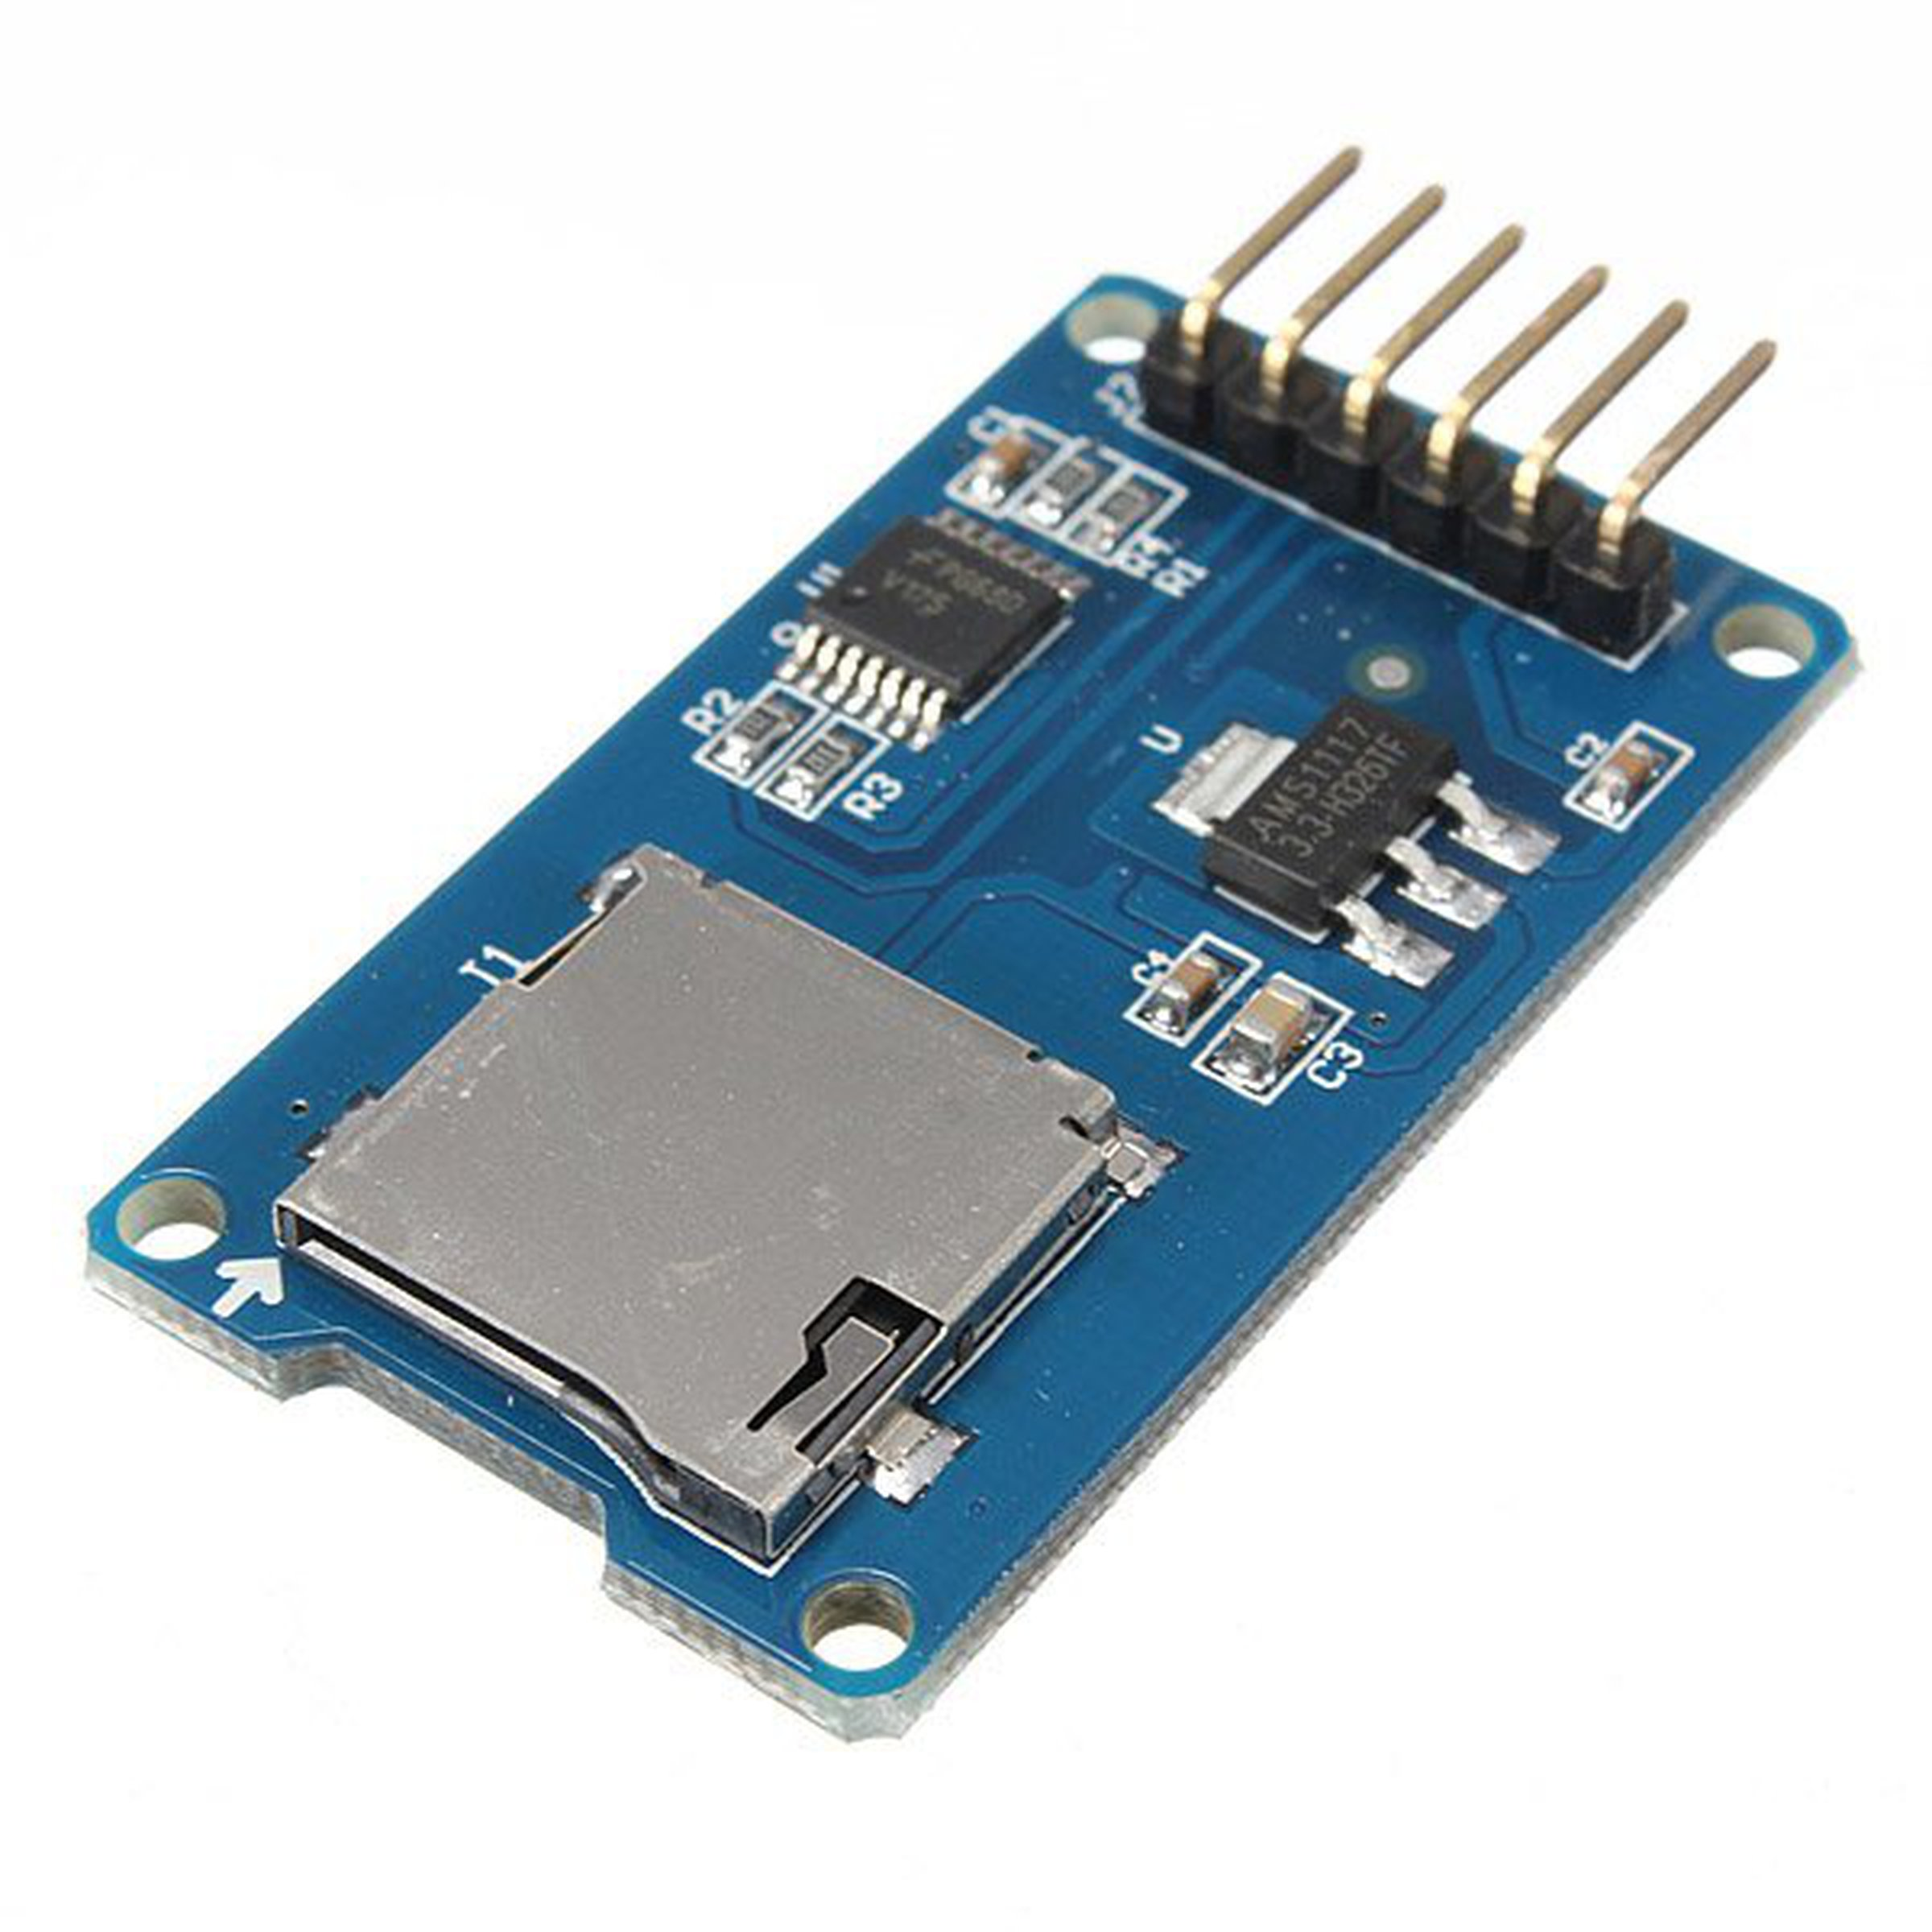 Micro sd card reader module for arduino from mmm on tindie